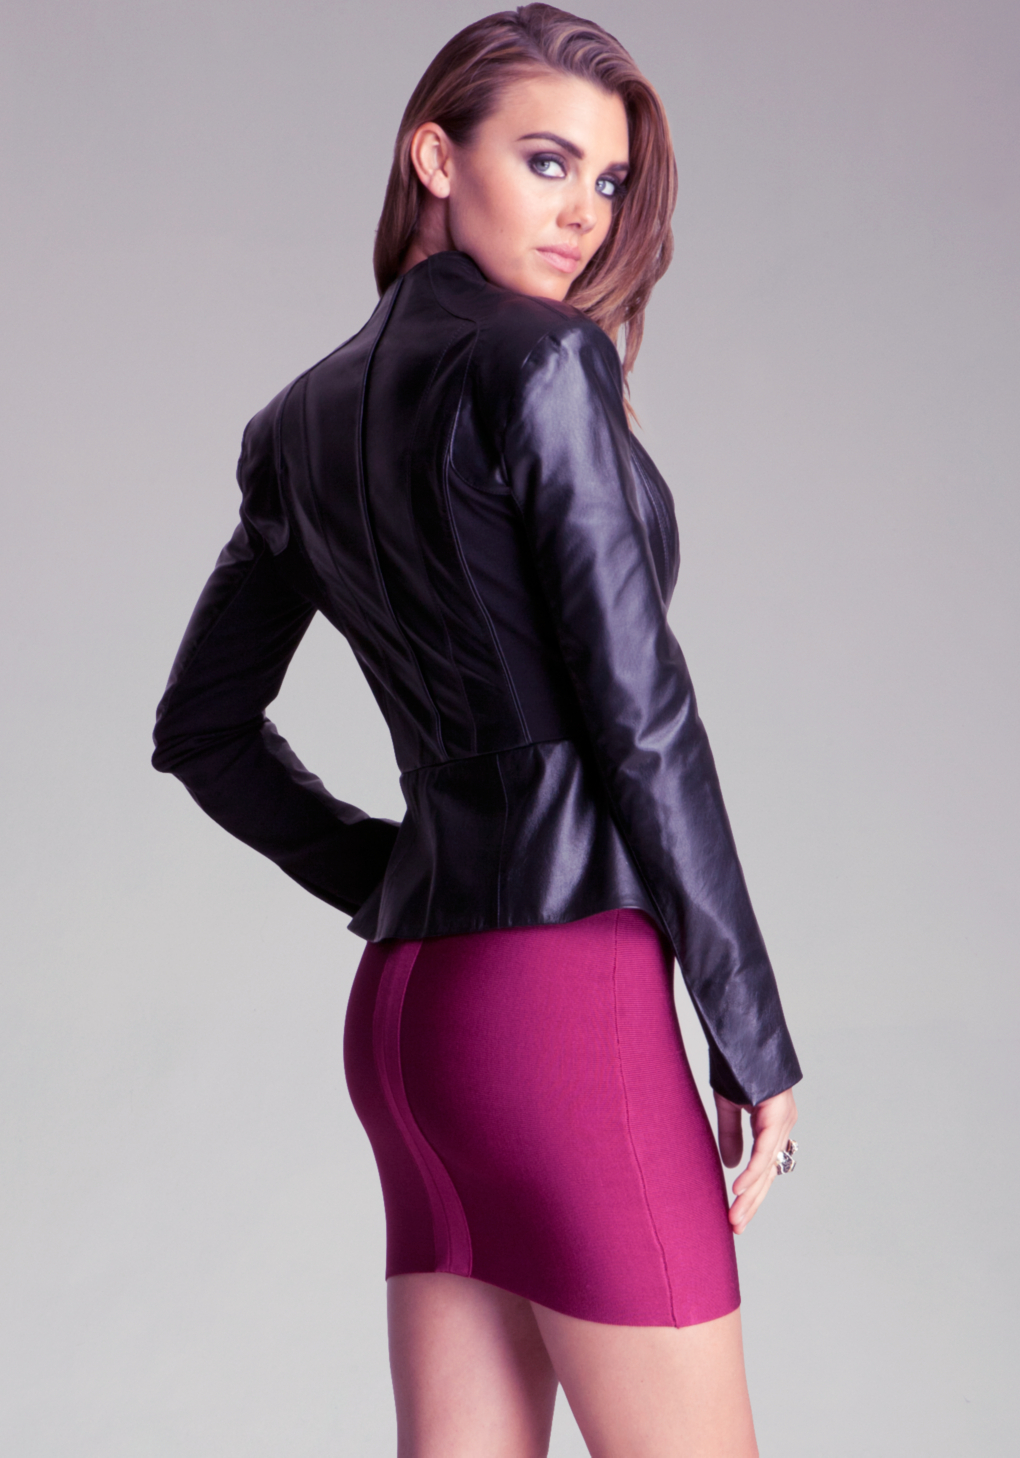 Bebe black leather jacket